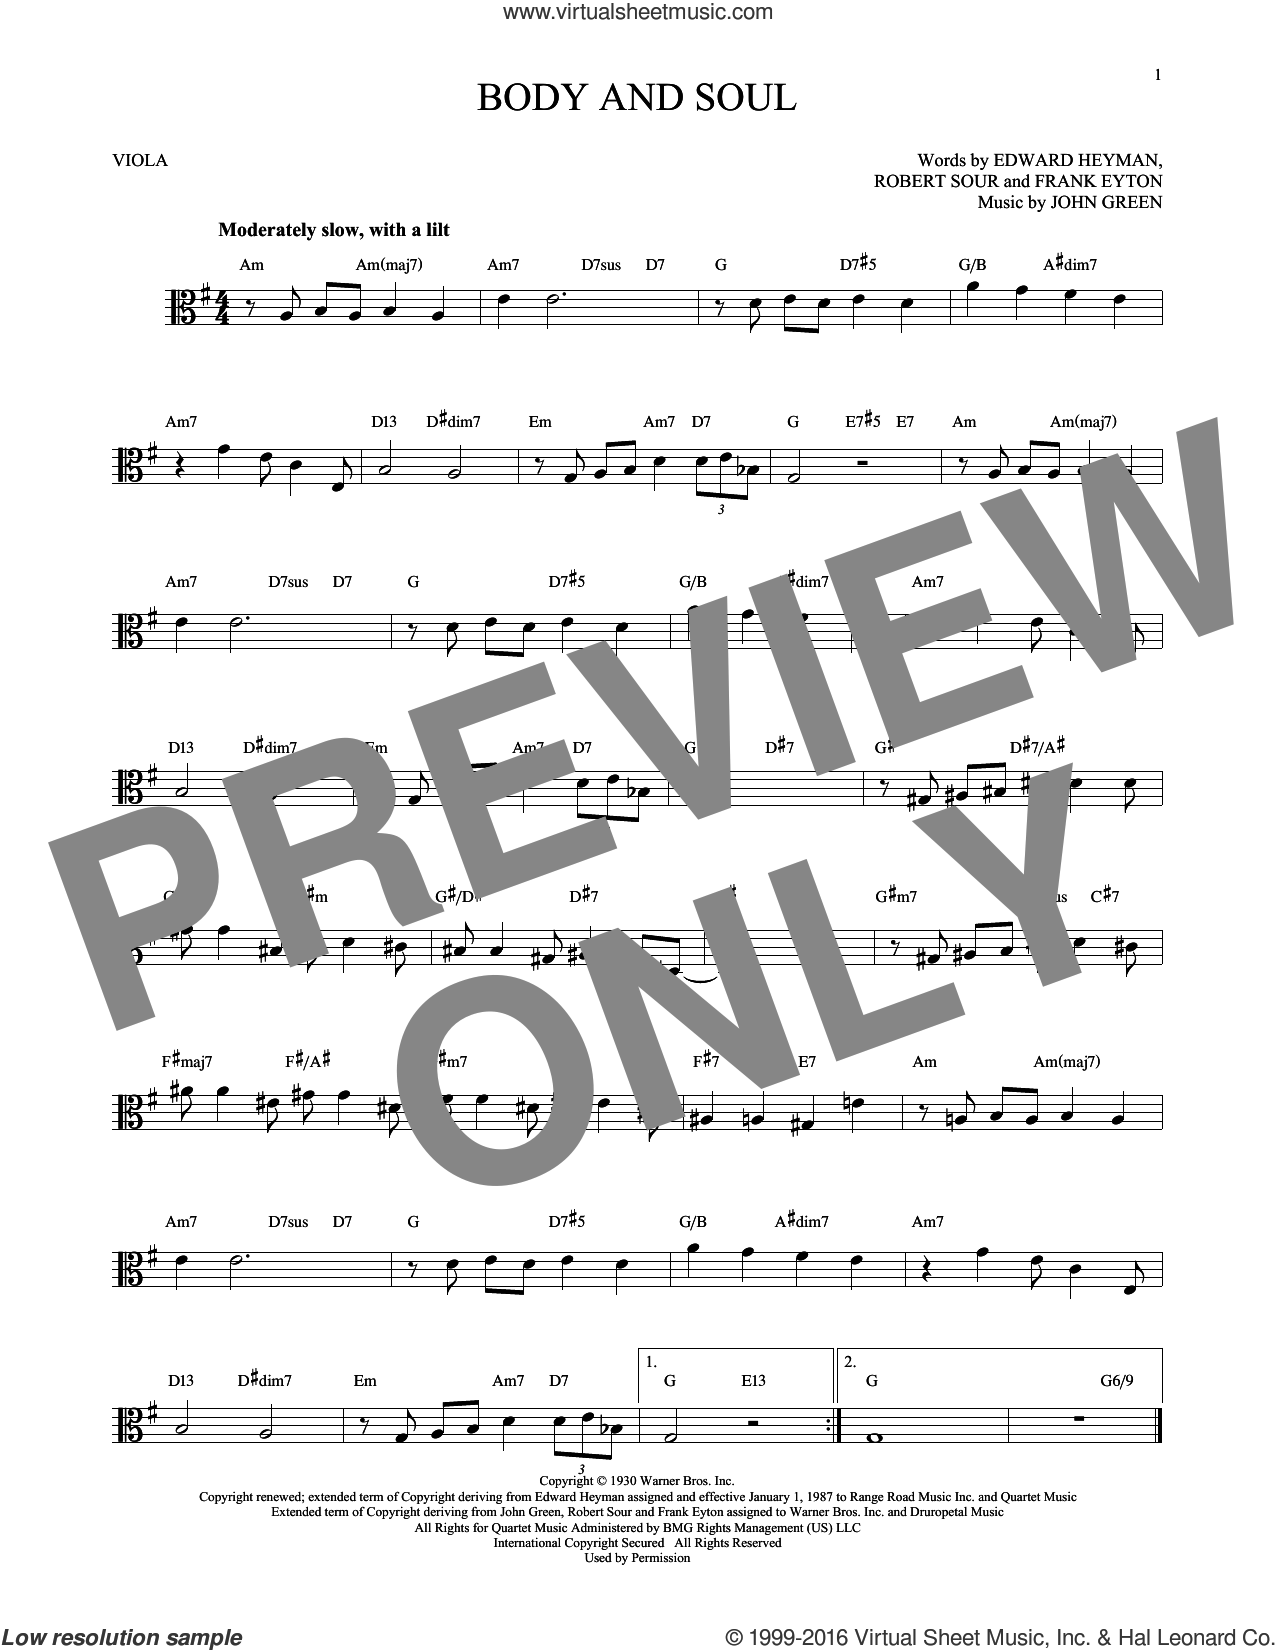 Body And Soul sheet music for viola solo by Robert Sour, Tony Bennett & Amy Winehouse, Edward Heyman, Frank Eyton and Johnny Green. Score Image Preview.